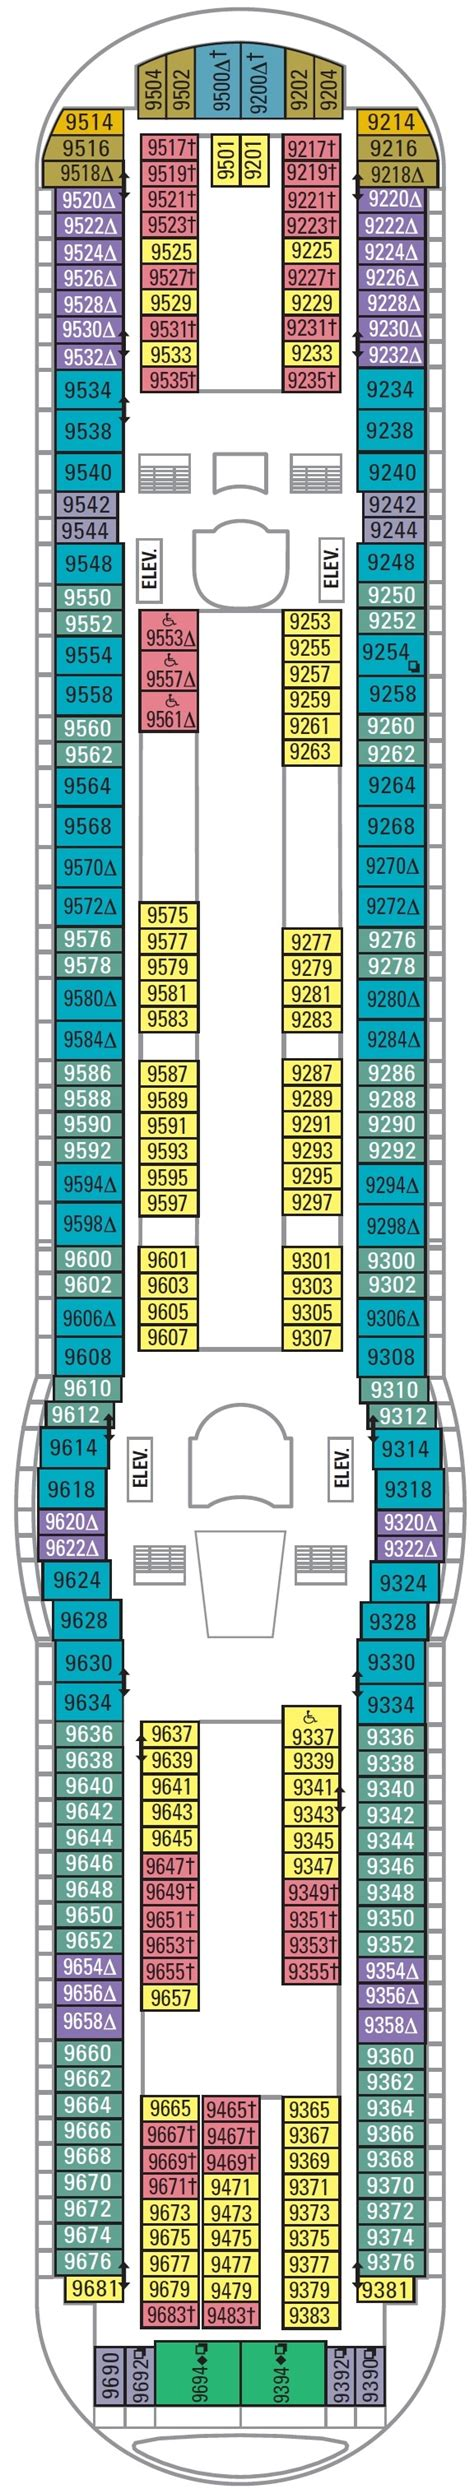 adventure of the seas floor plan adventure of the seas deck plans cruisekings